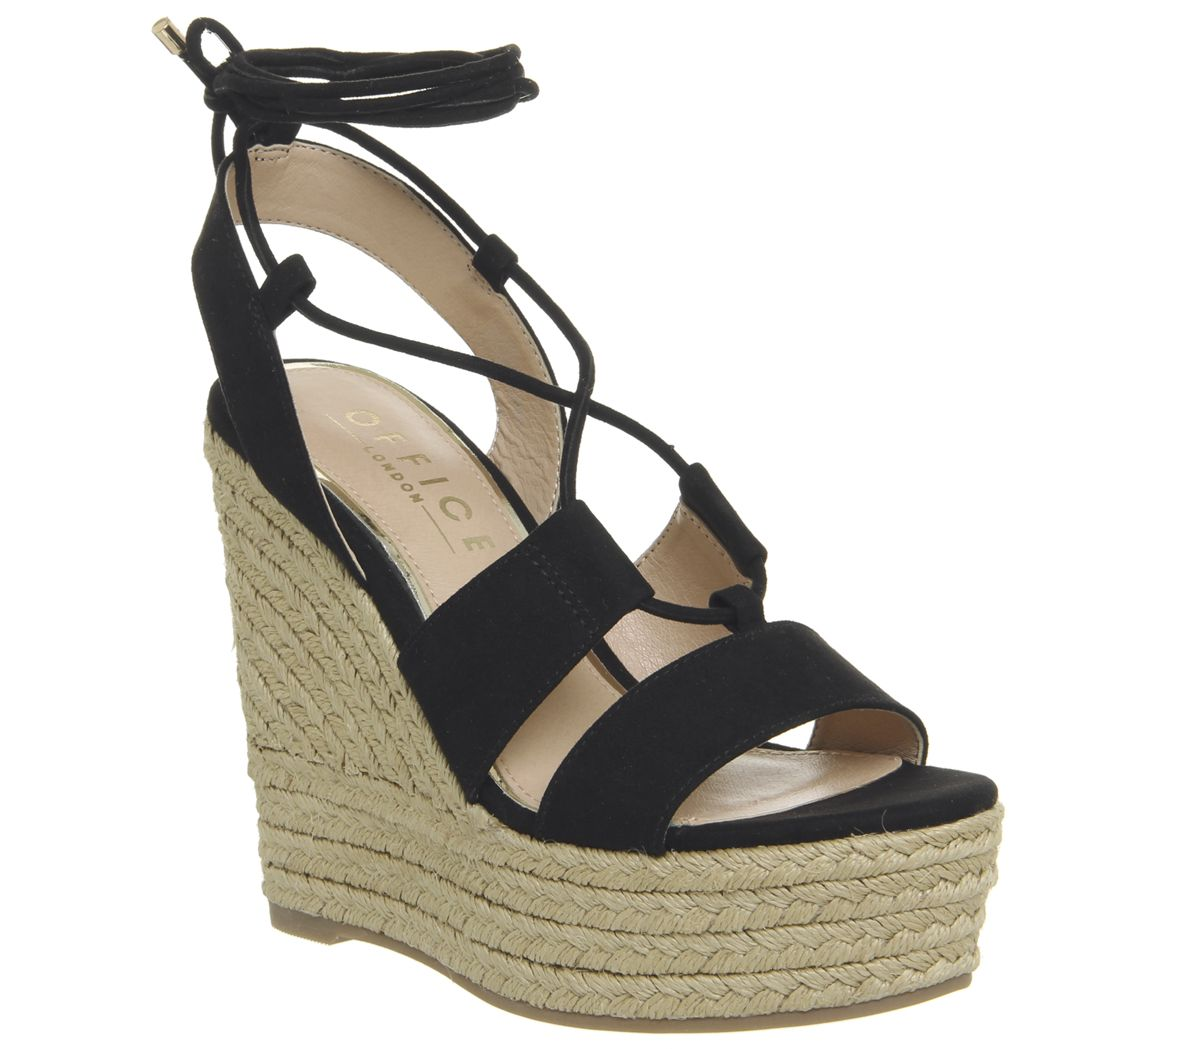 366e70e8753 Office Hula Hula Ghillie Espadrille Wedges Black - Sandals